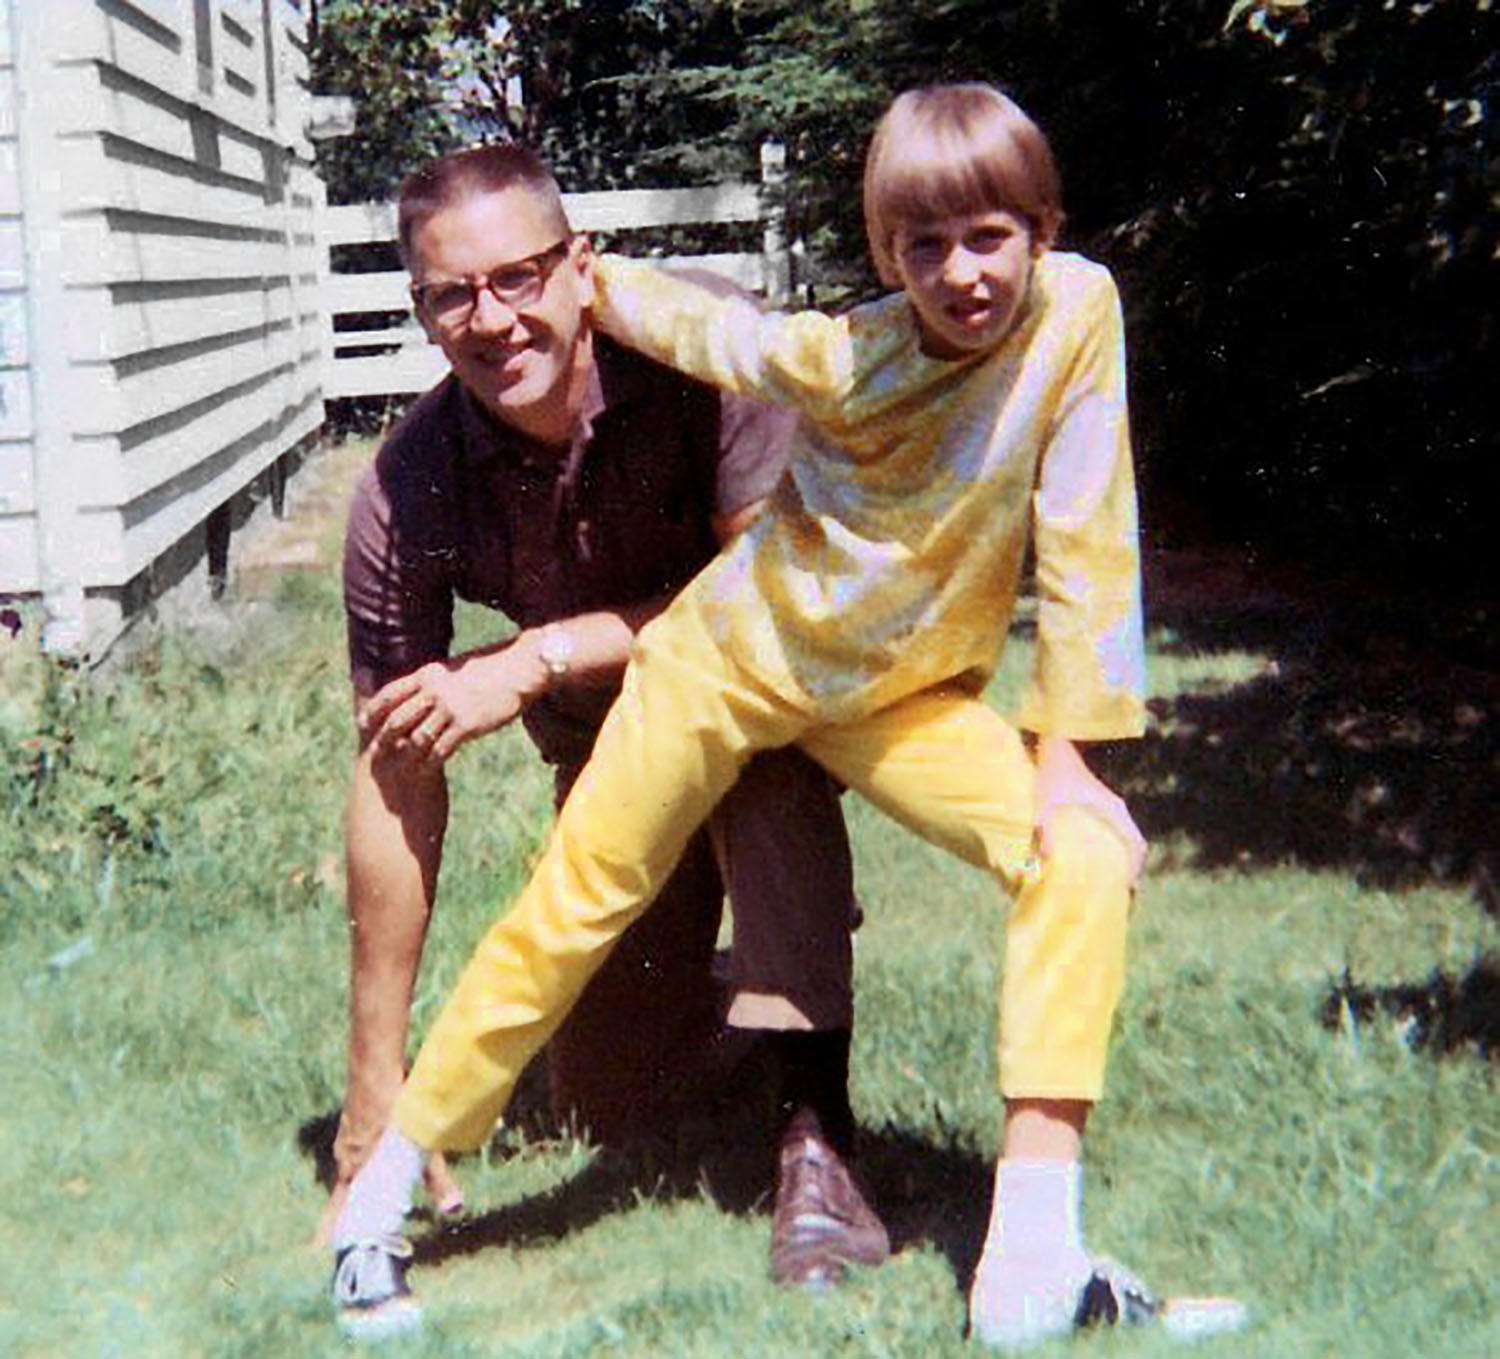 Me, age 8, posing here with Dad. Are we ready to play football?